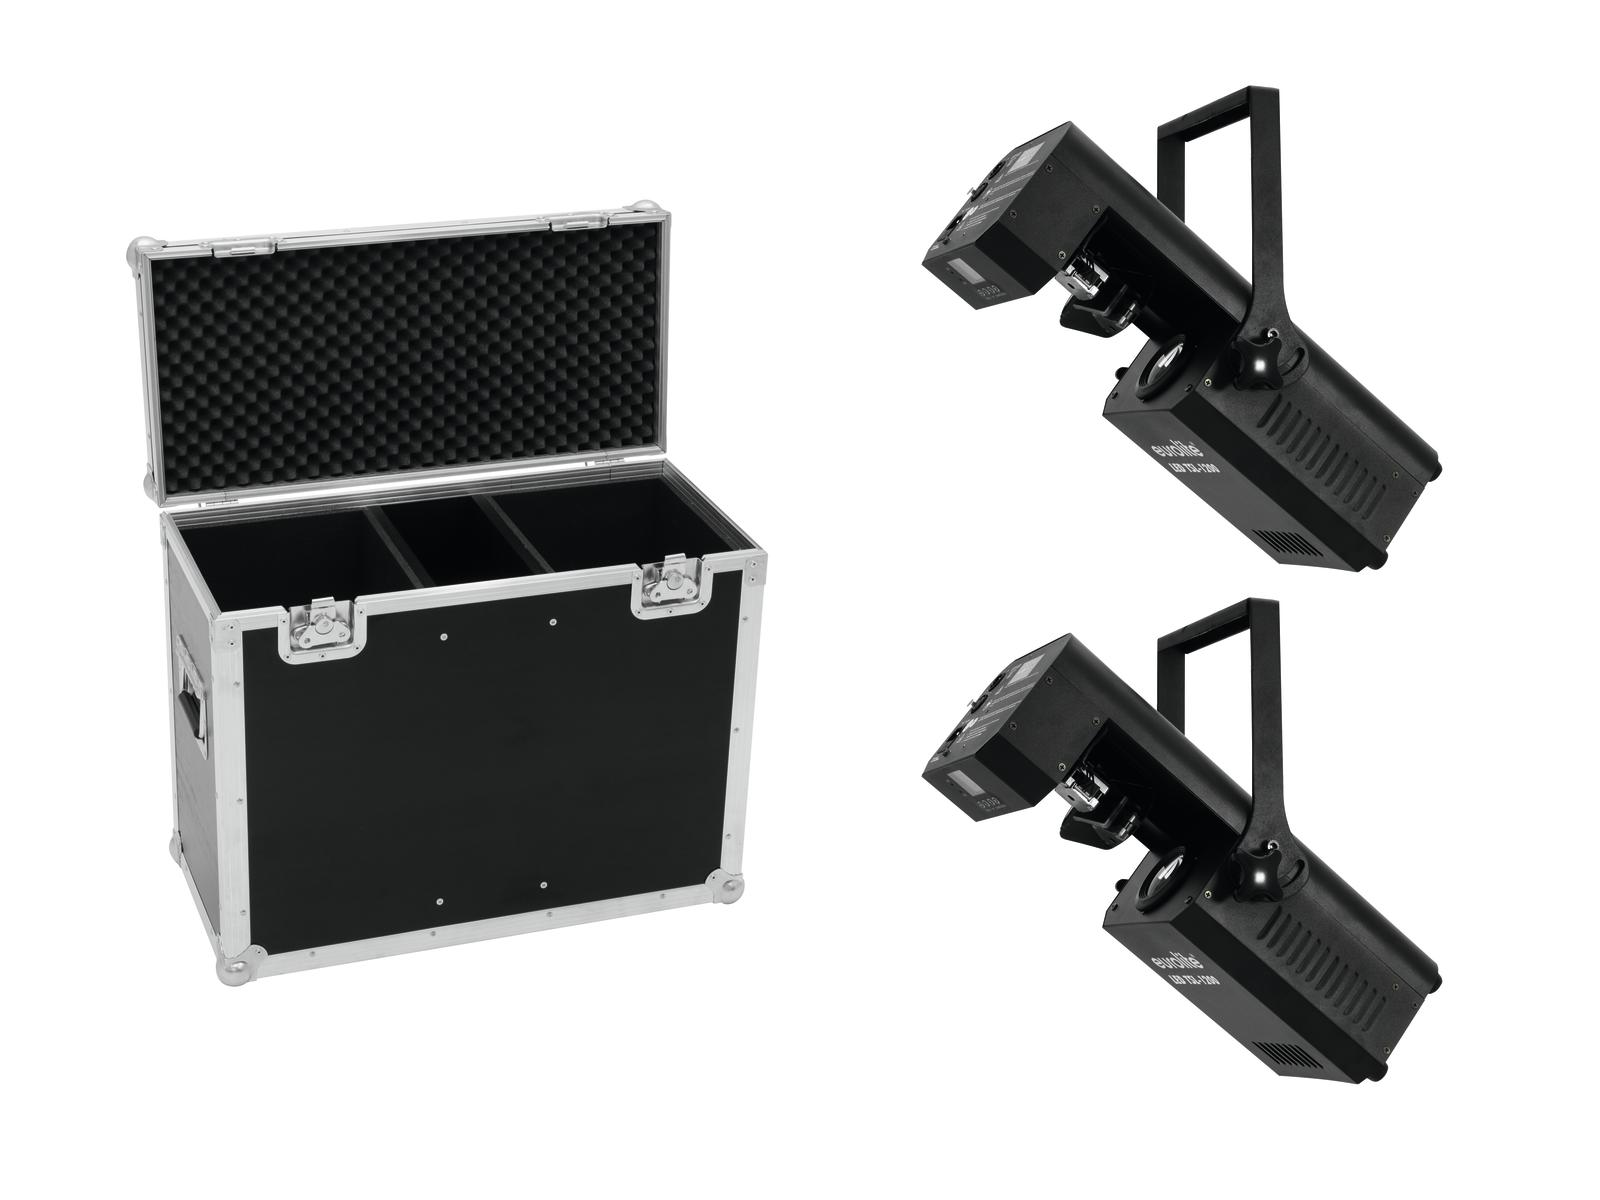 EUROLITE Set 2x LED TSL-1200 Scansione + Caso